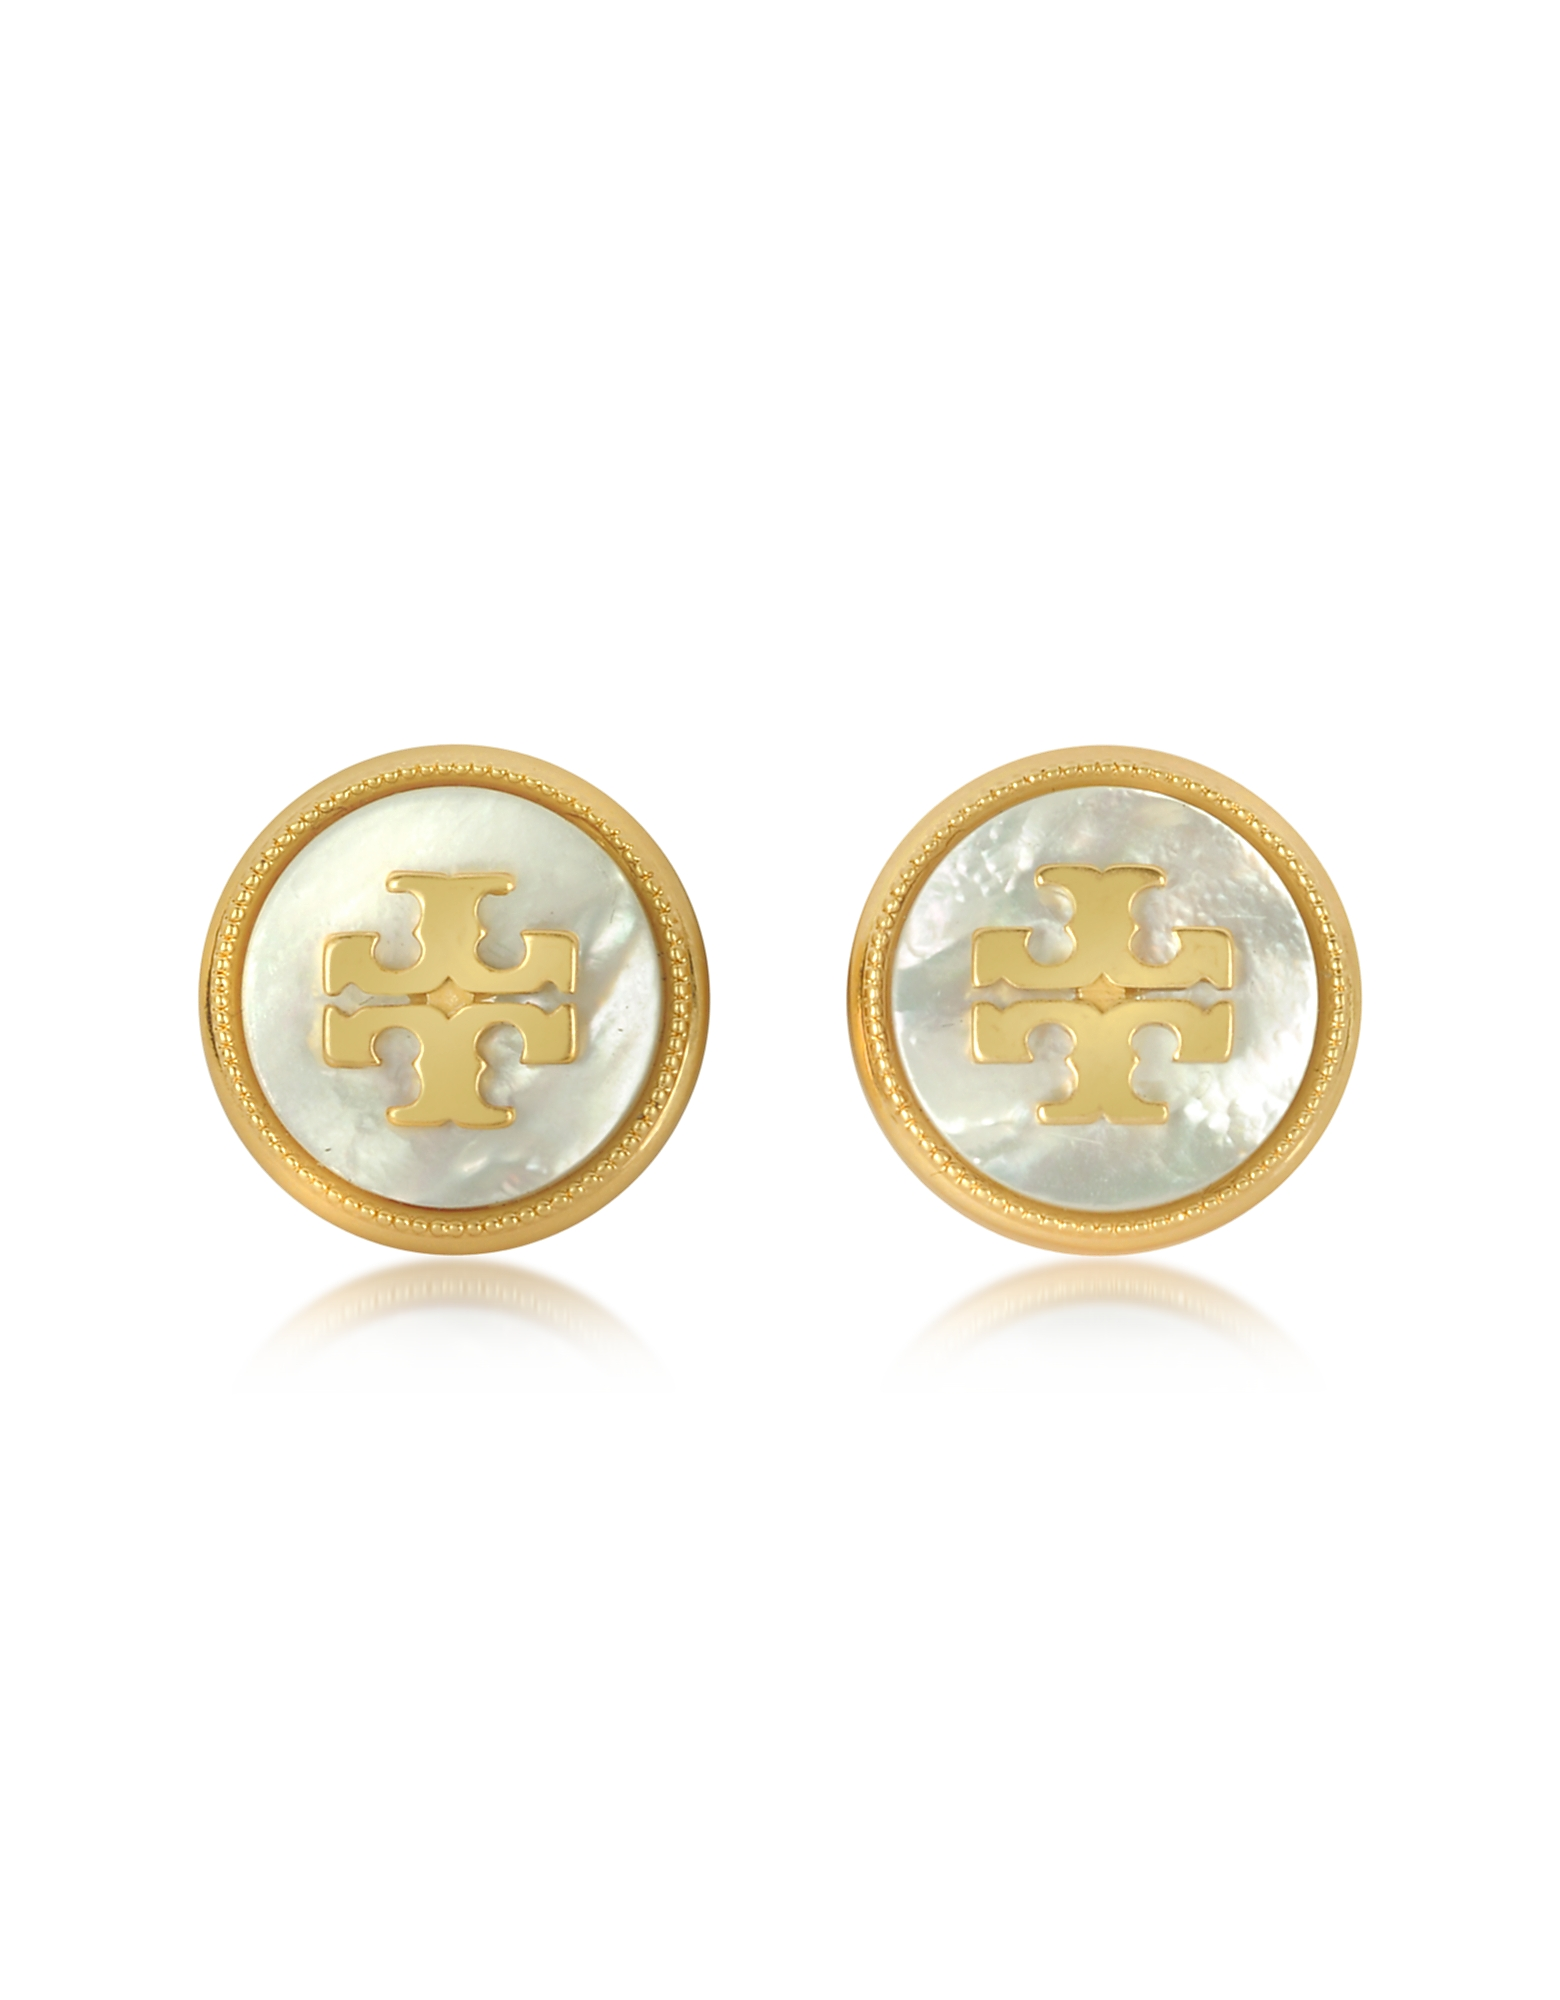 Mother of Pearl and Vintage Goldtone Brass Stud Earrings